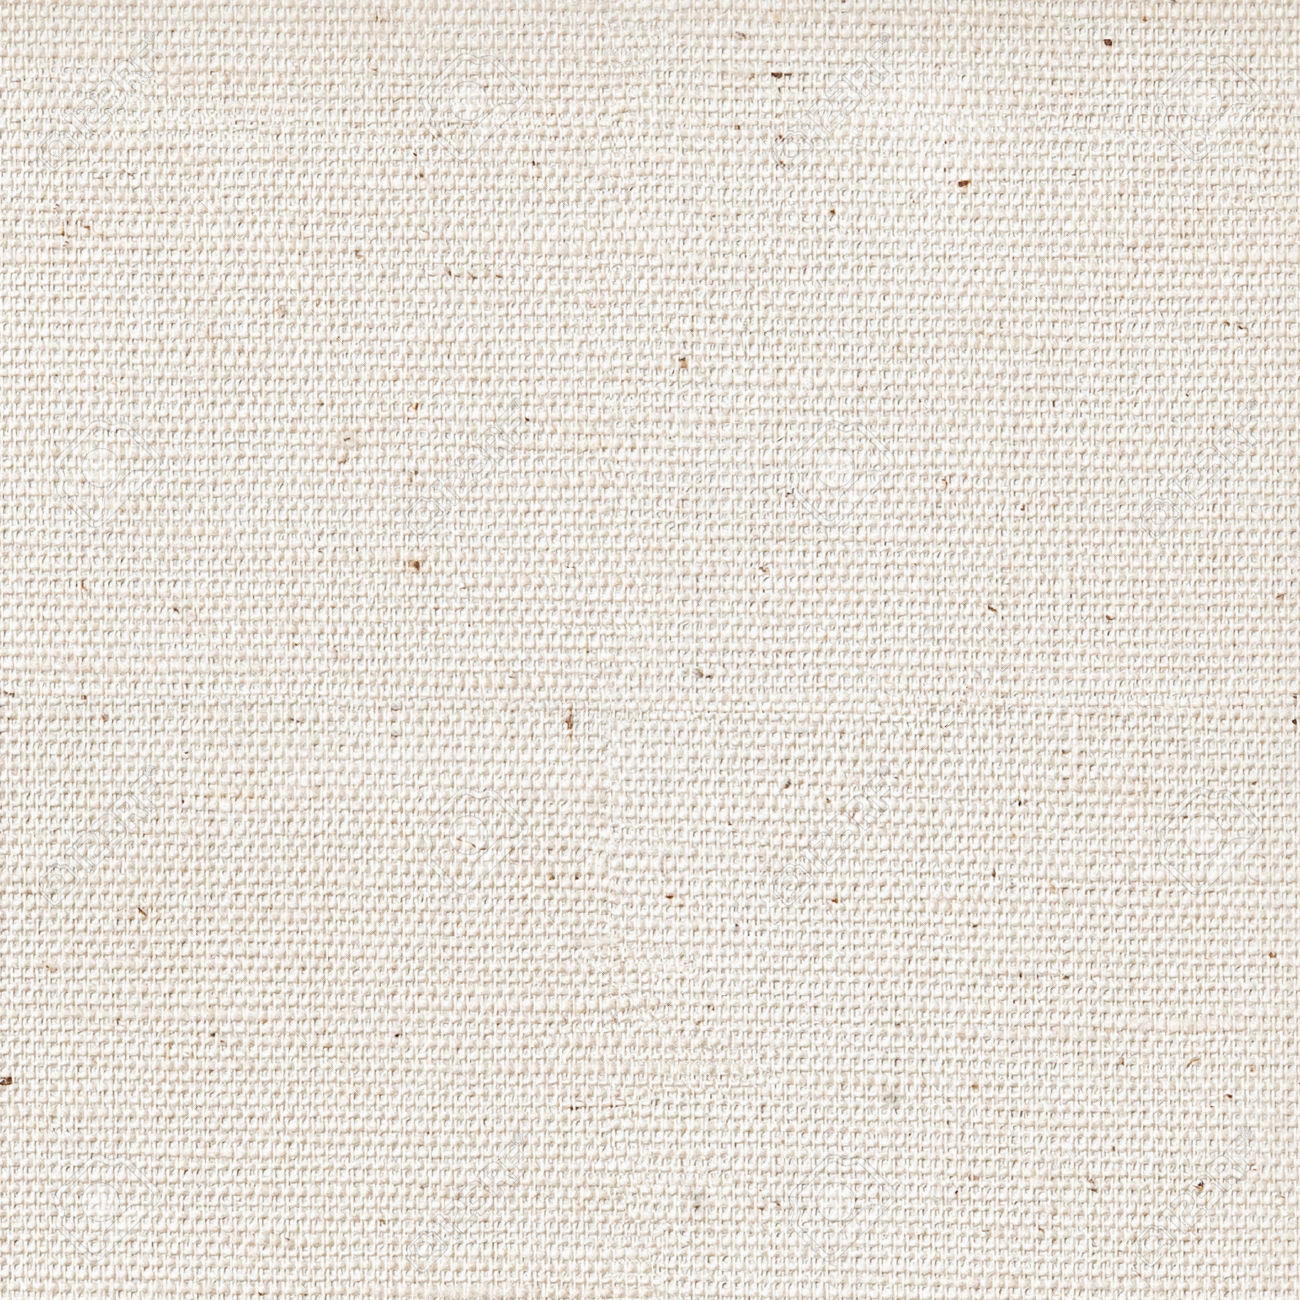 25962092-Linen-fabric-texture-background-Sguare-seamless ...